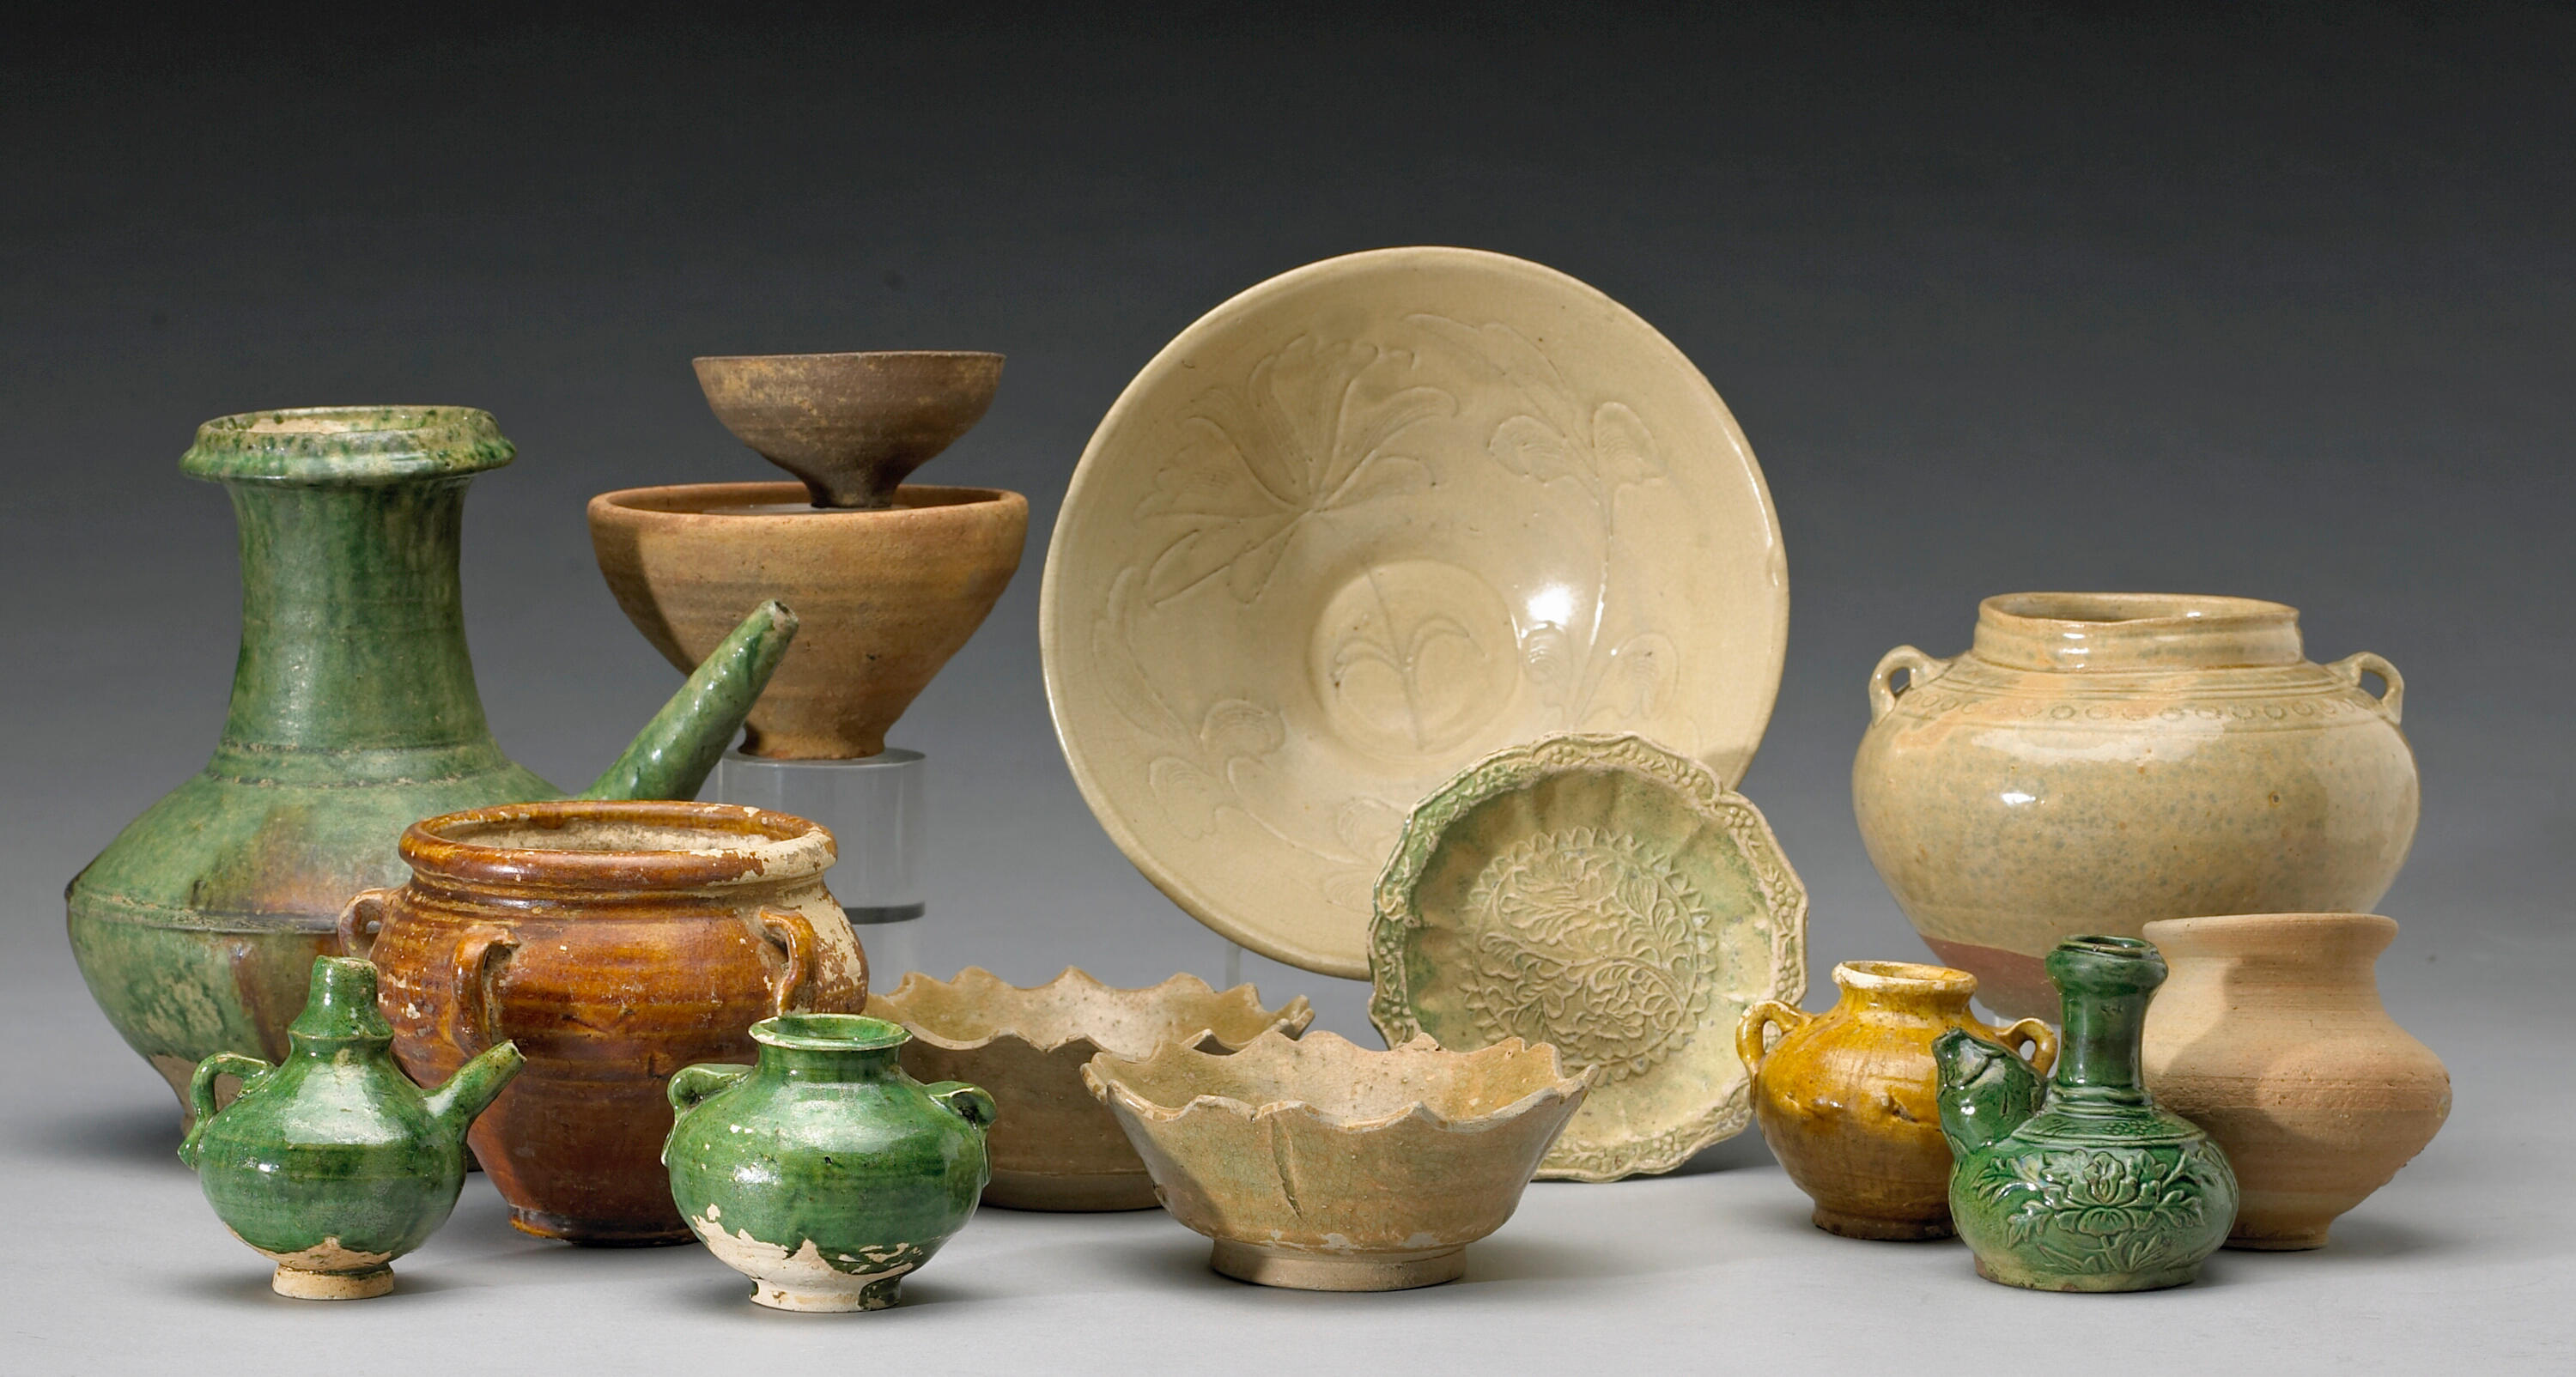 A group pottery ceramic trade wares